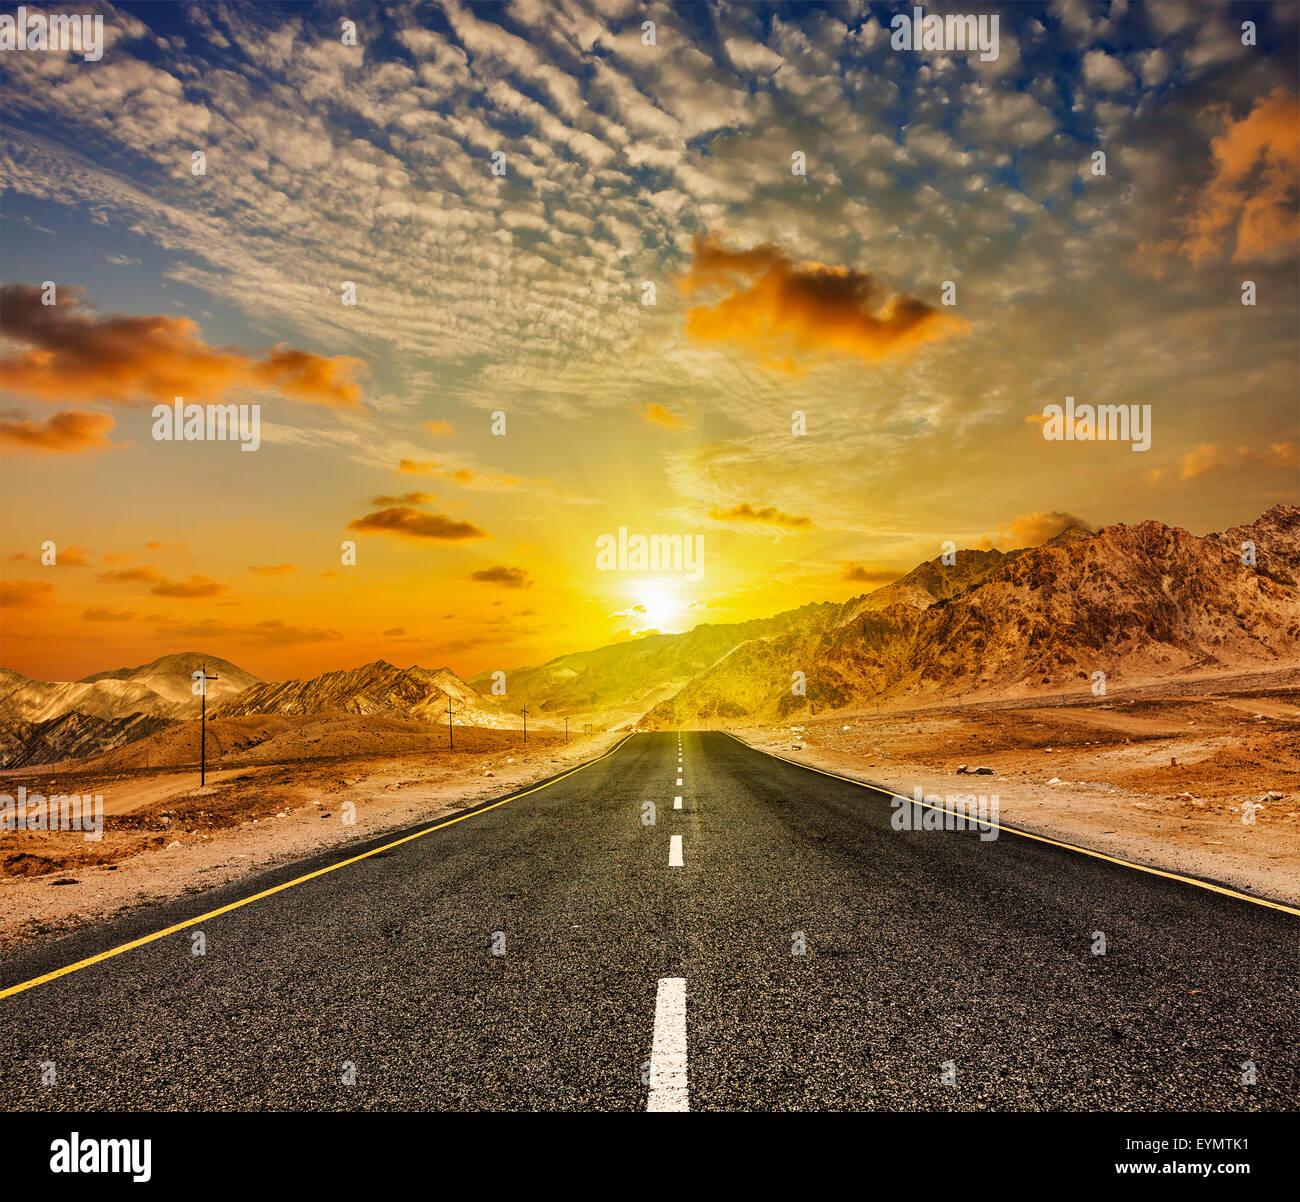 Travel forward concept background - road in Himalayas with mountains and dramatic clouds on sunset. Ladakh, Jammu - Stock Image